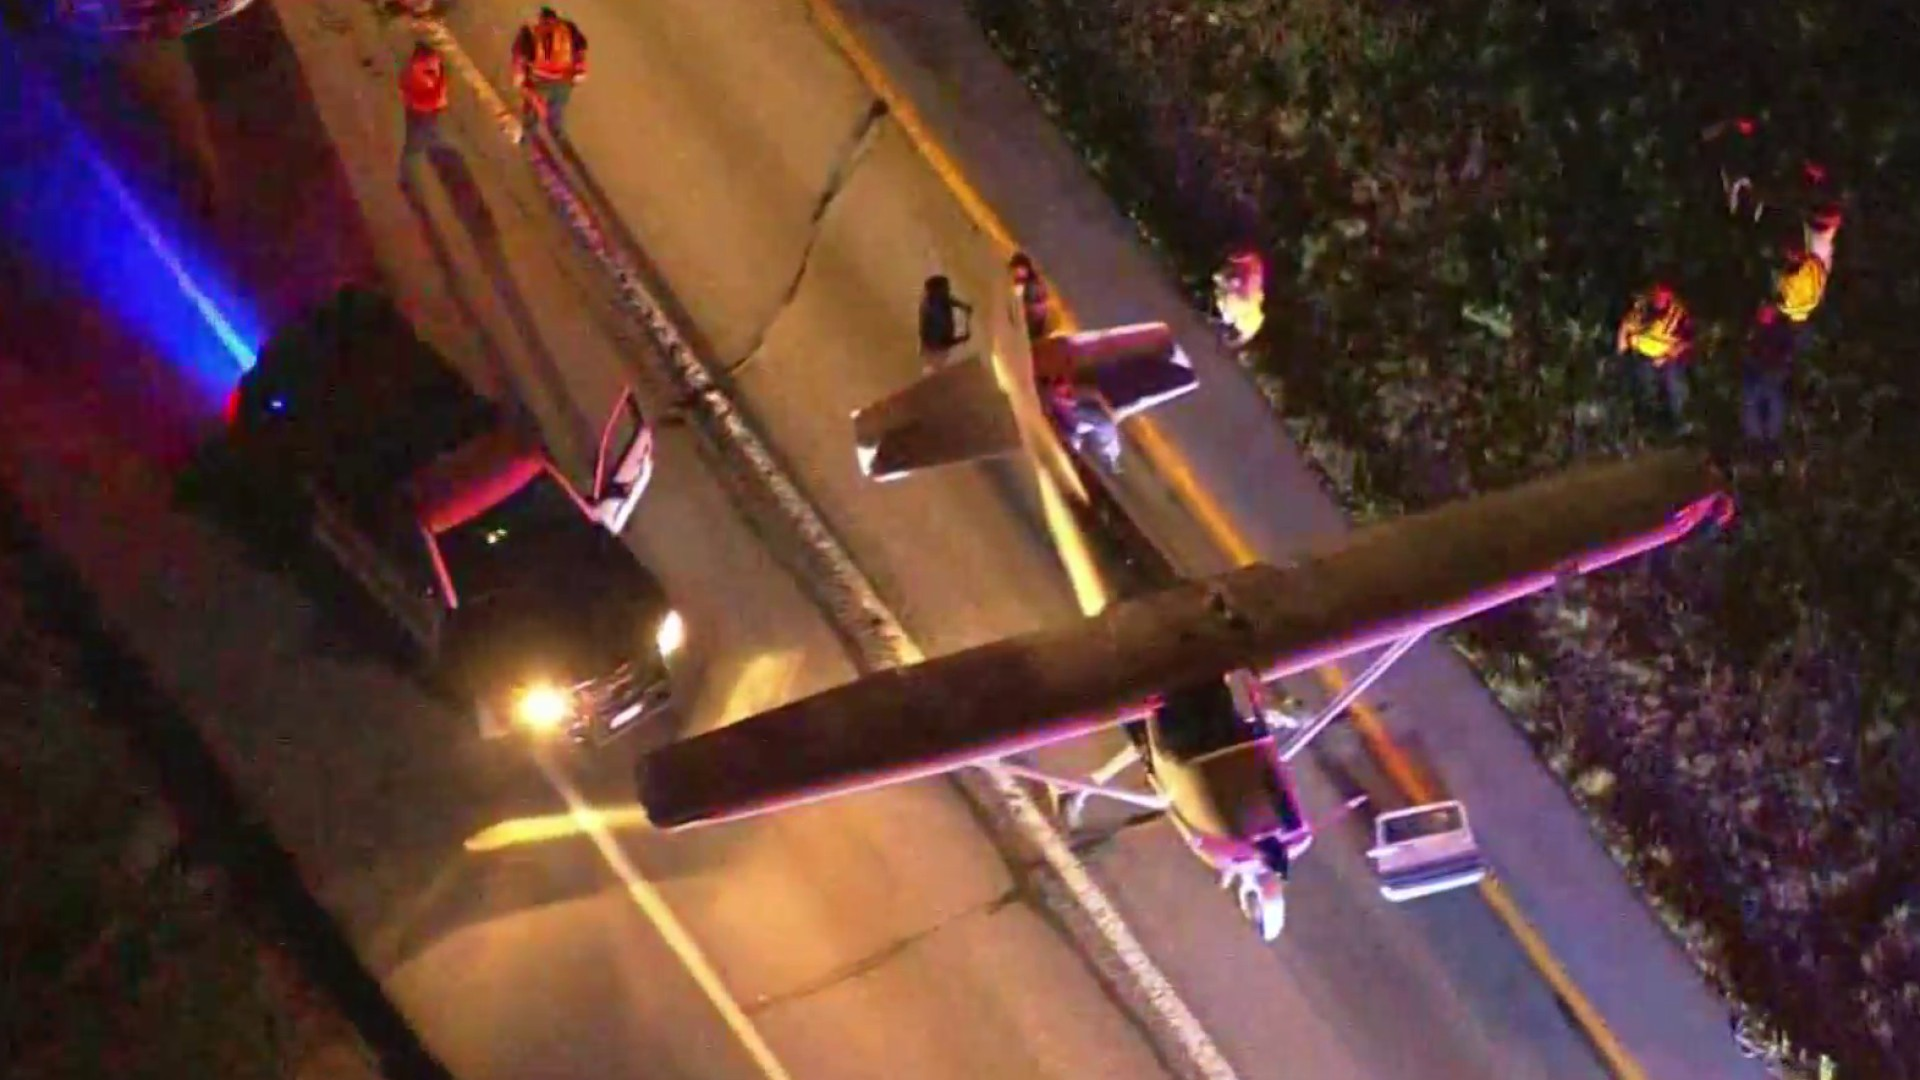 #ExeterSully: Young Pilot Hailed a Hero After Landing Plane on Pa. Highway